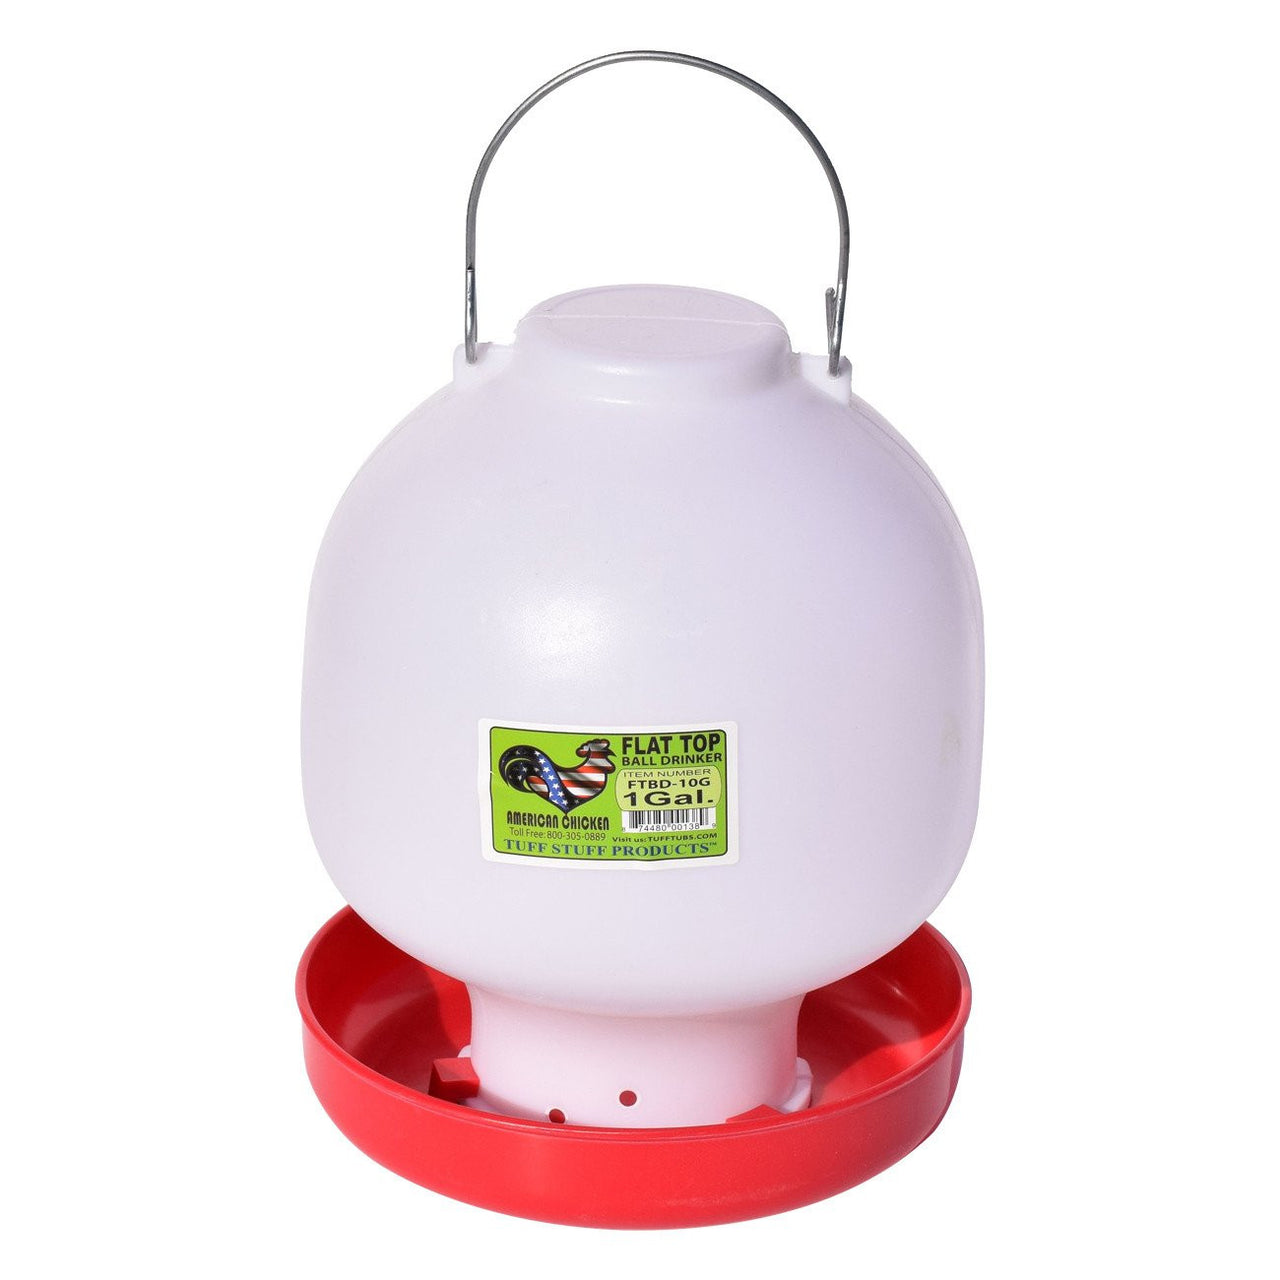 Tuff Stuff Poultry Flat Top Ball Drinker - 1Gal - Poultry Feeders Drinkers Tuff Stuff - Canada